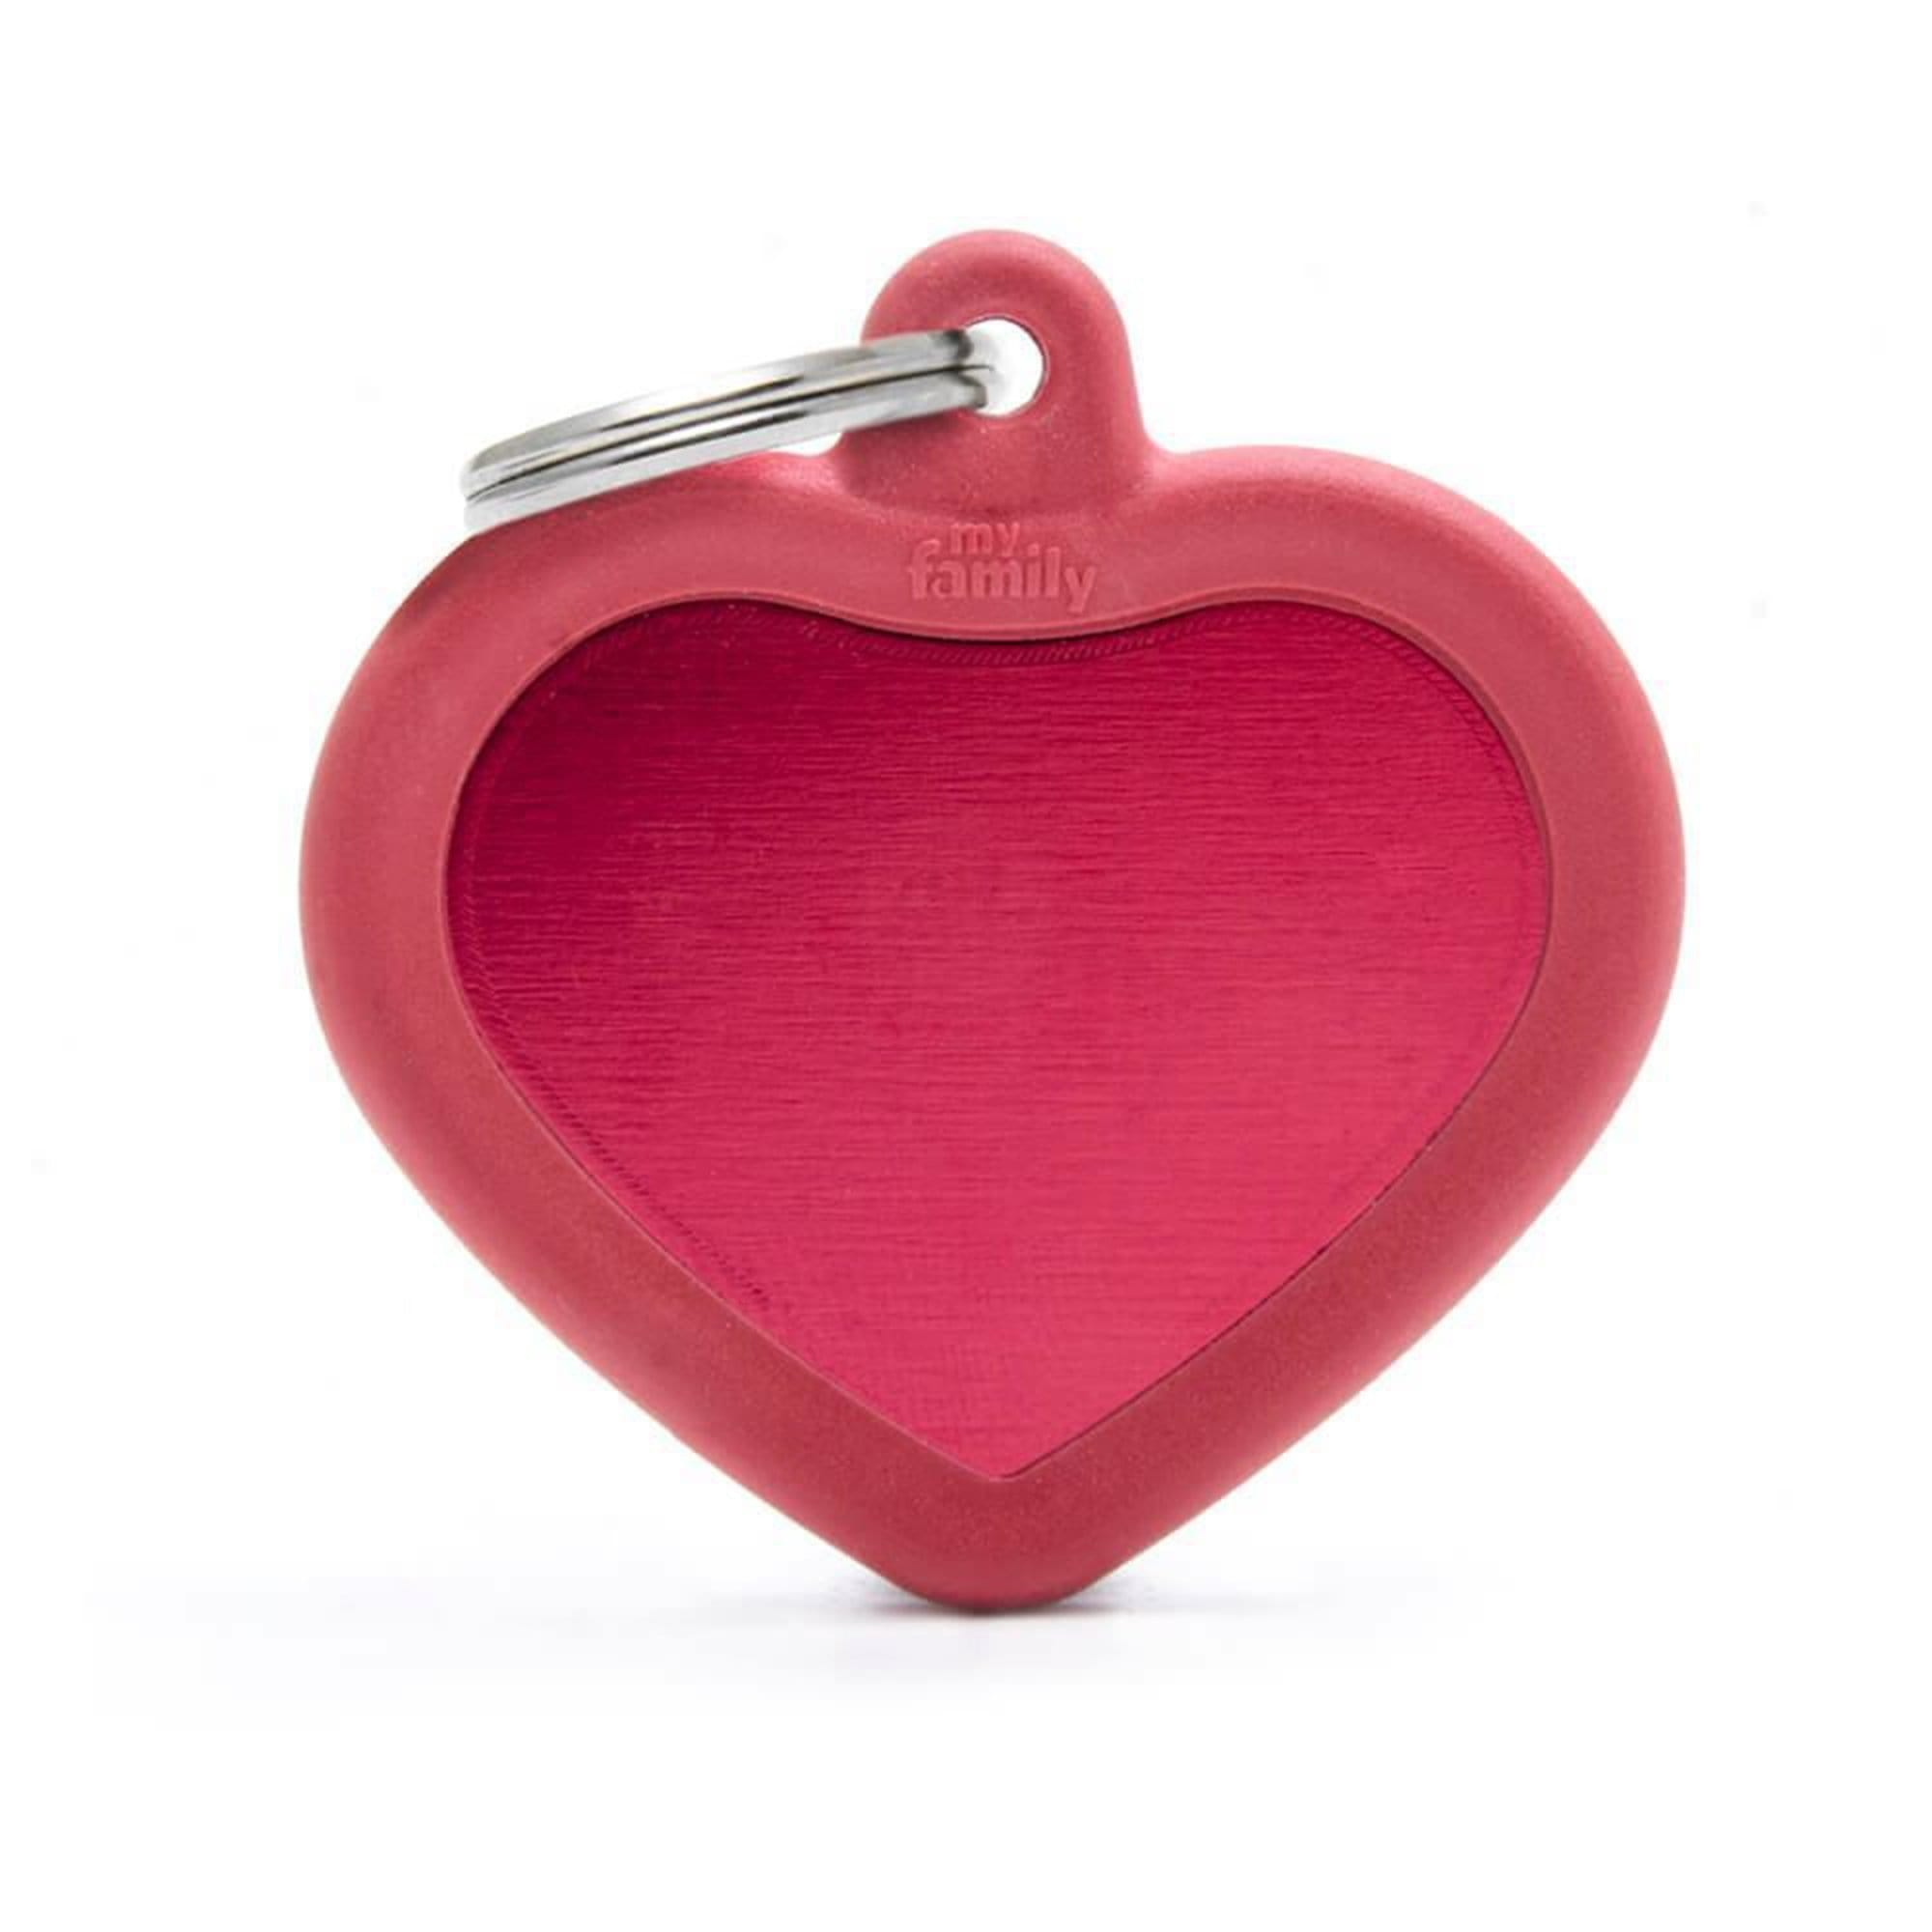 My Family Aluminium Red Heart With Rubber Dog I.D. Tags 4F4B